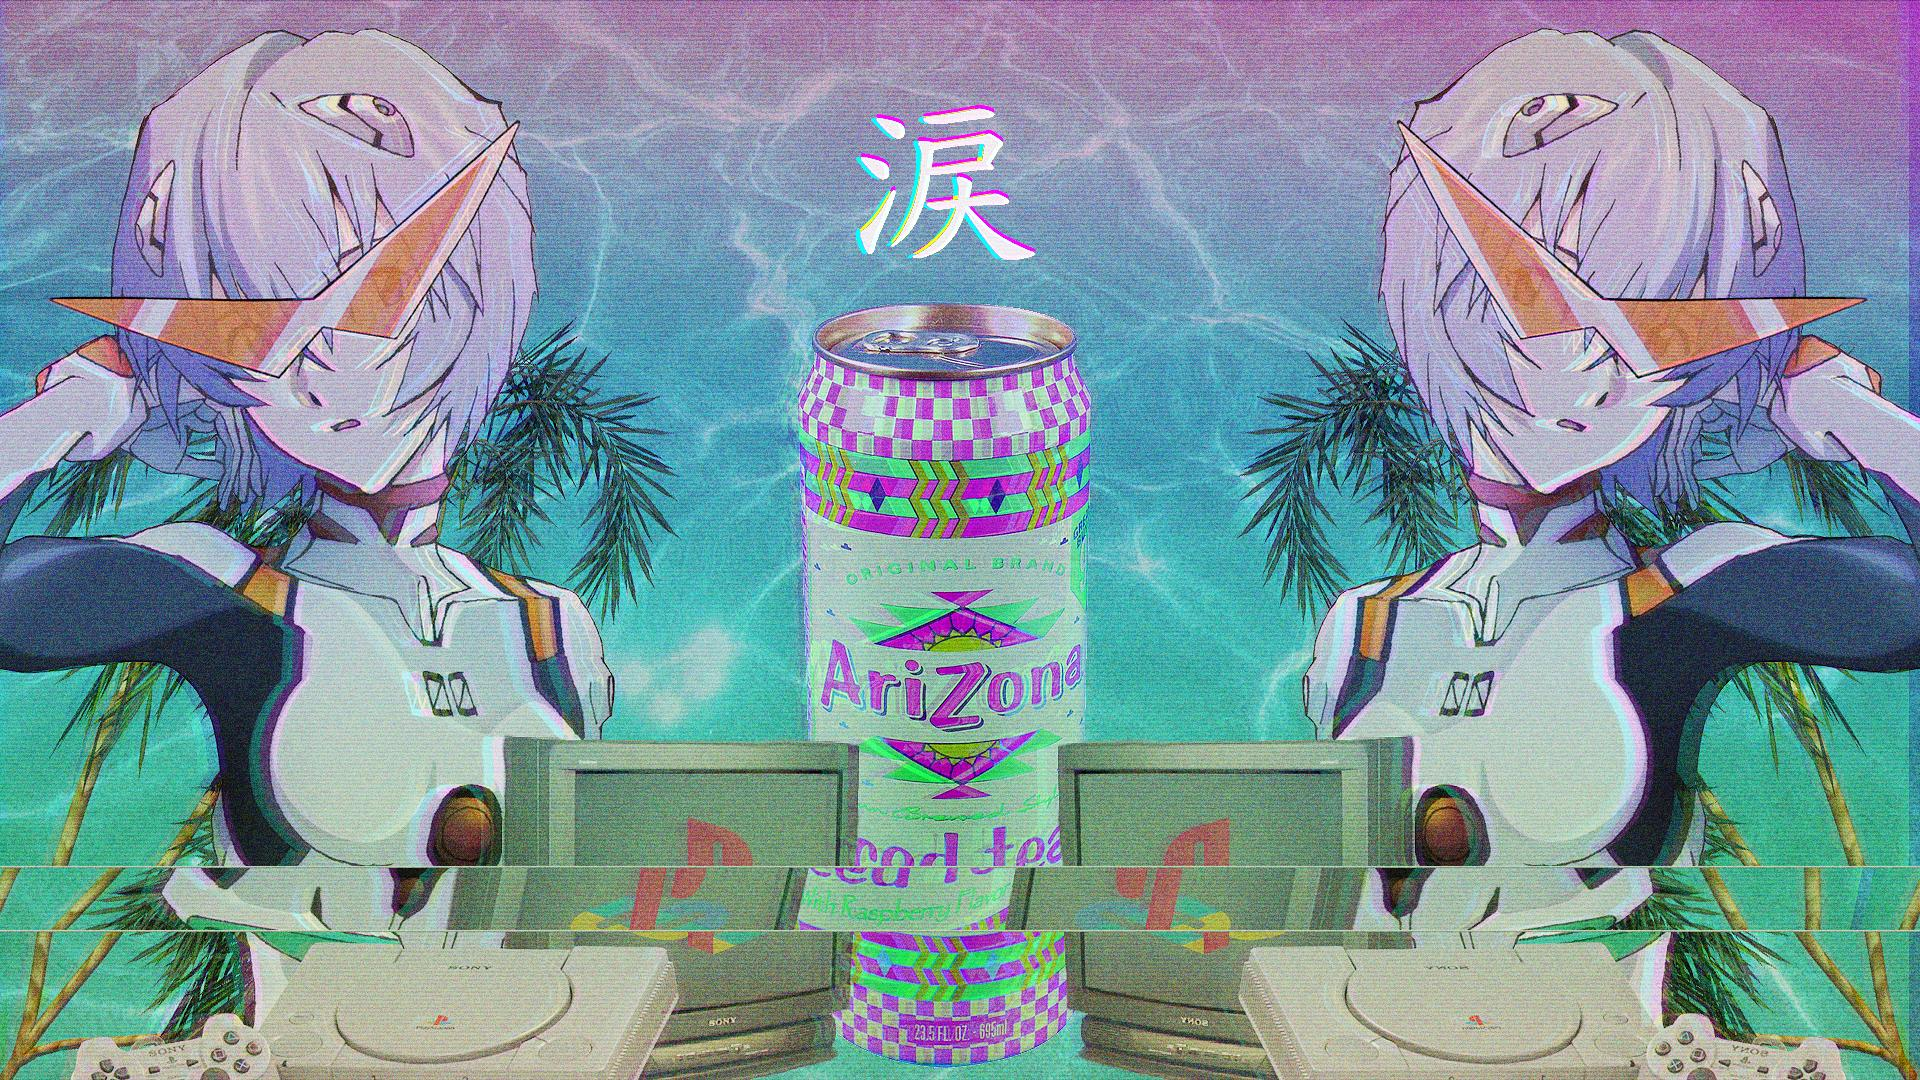 Aesthetic Vaporwave Wallpapers High Quality Resolution at 1920x1080